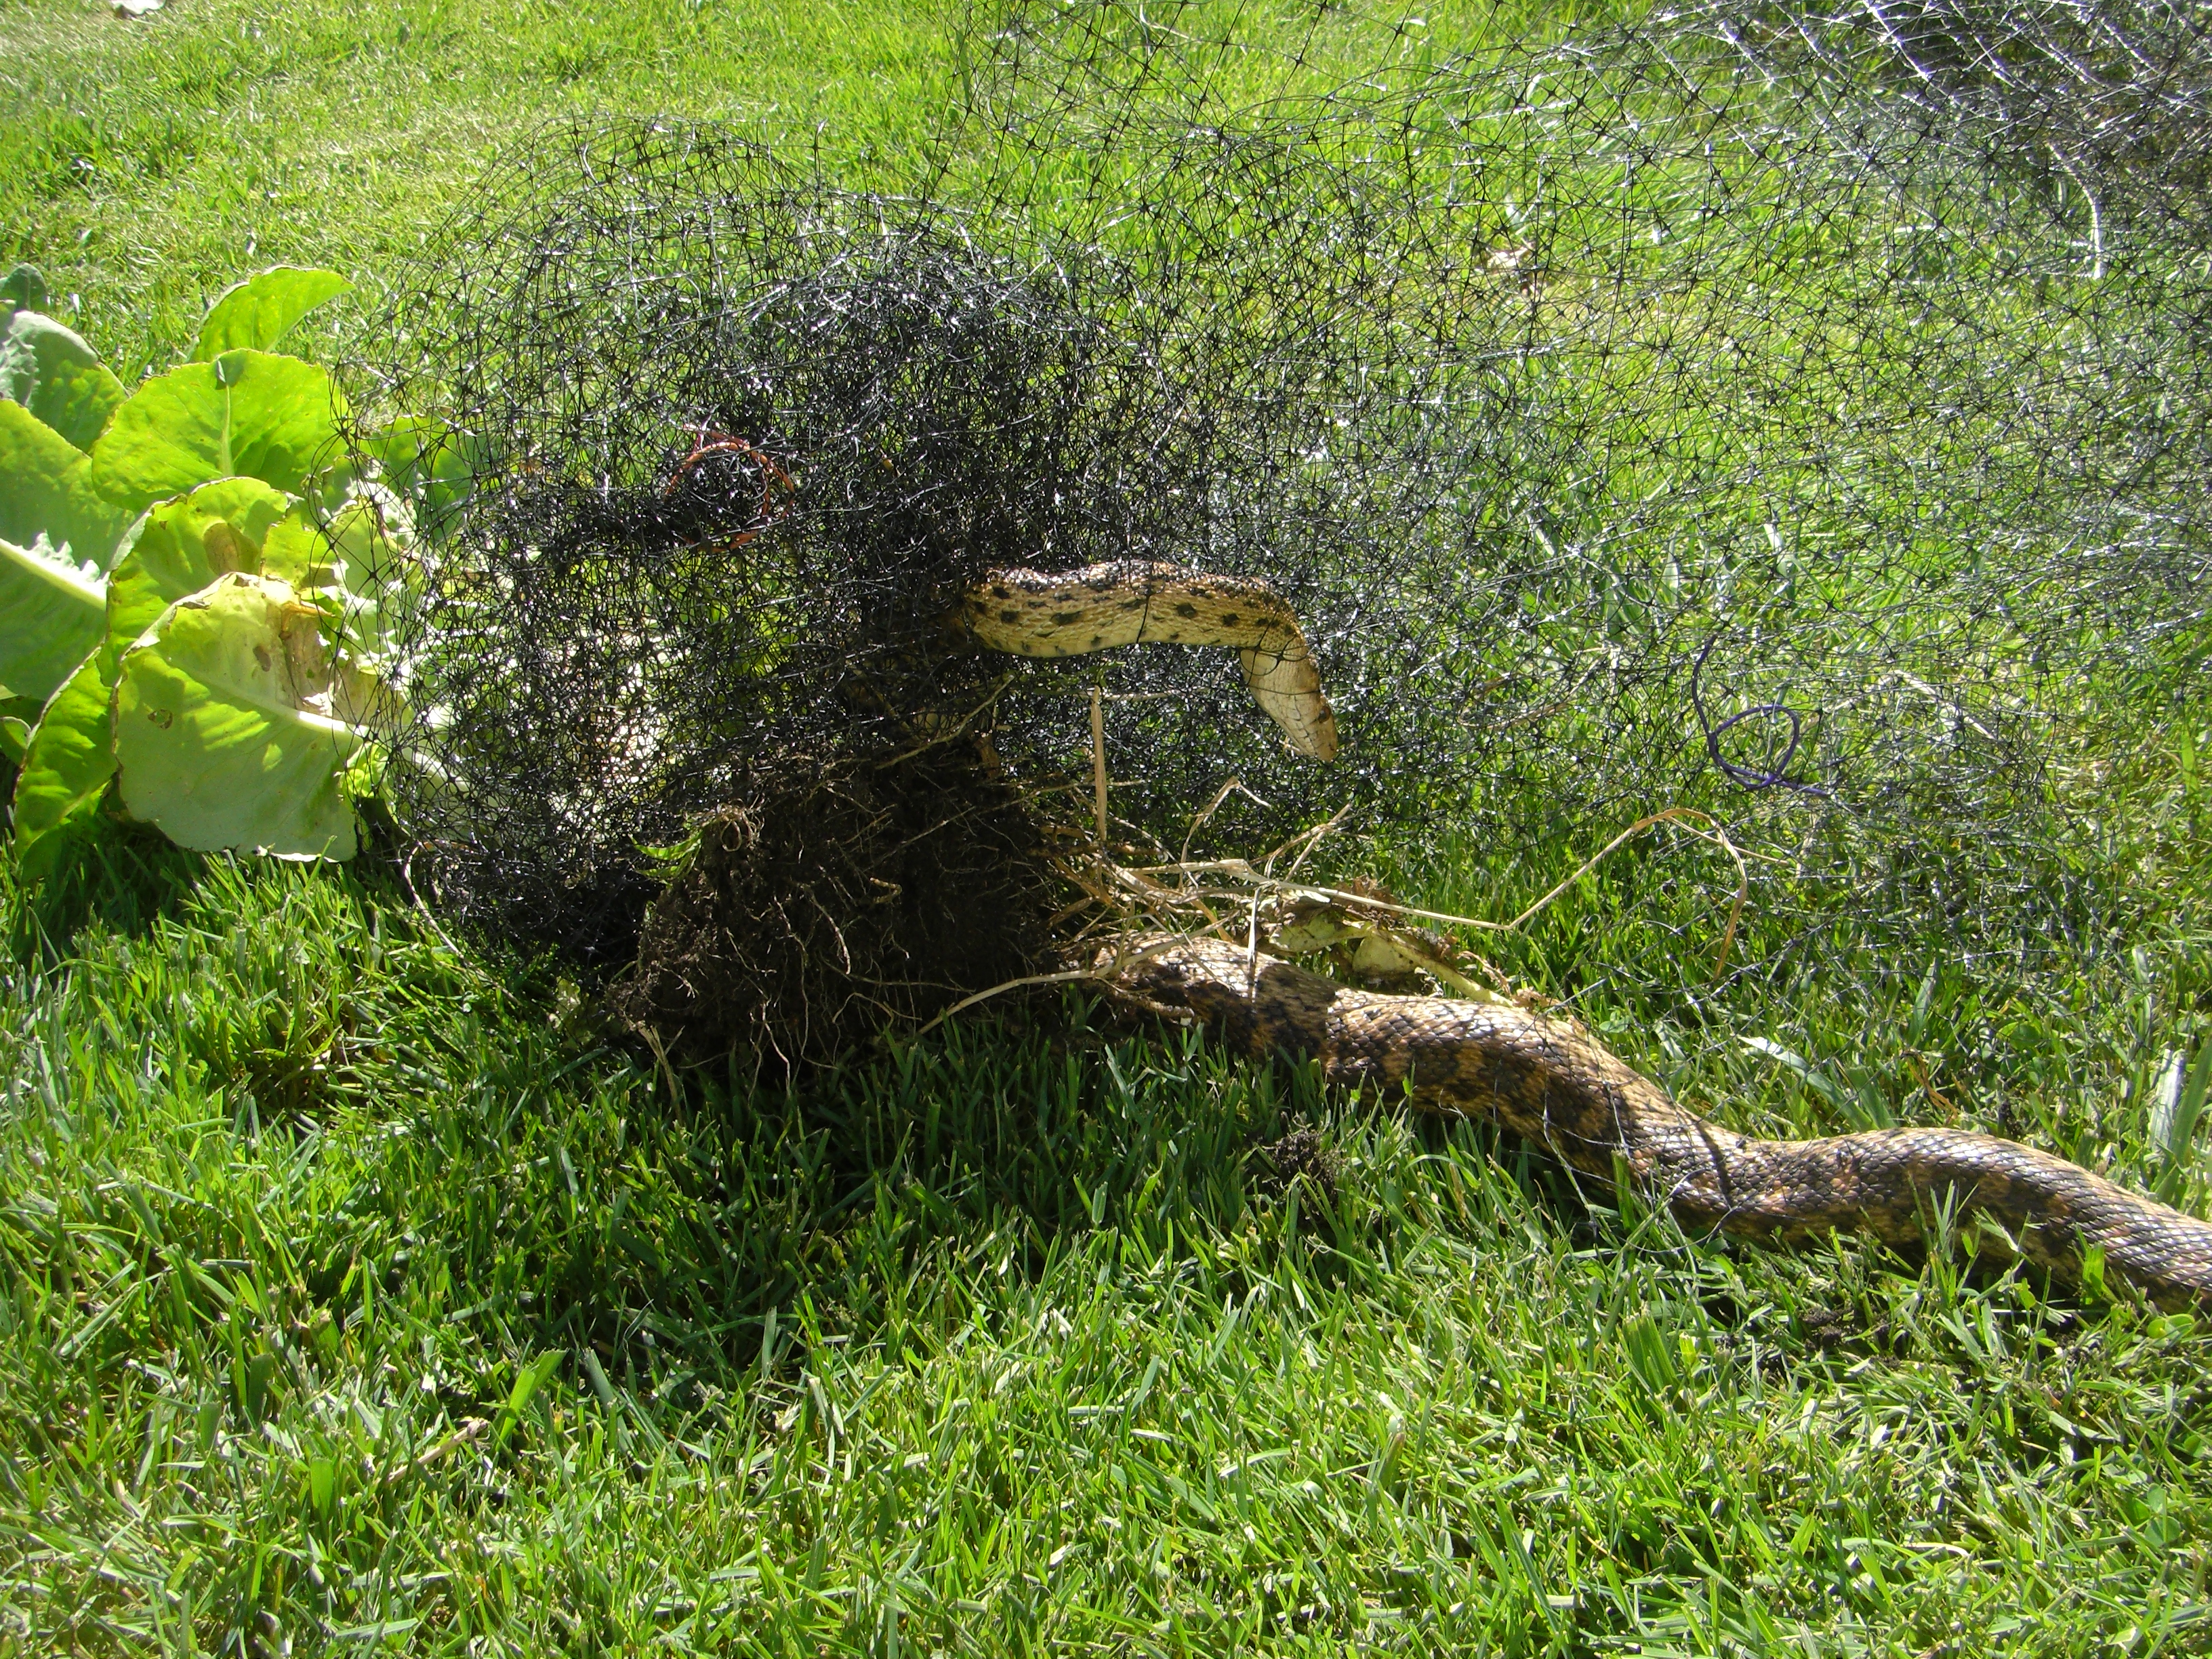 How To Keep Deer Out Of My Garden Deer Proof Your Garden And Yard Naturally Pest Control What